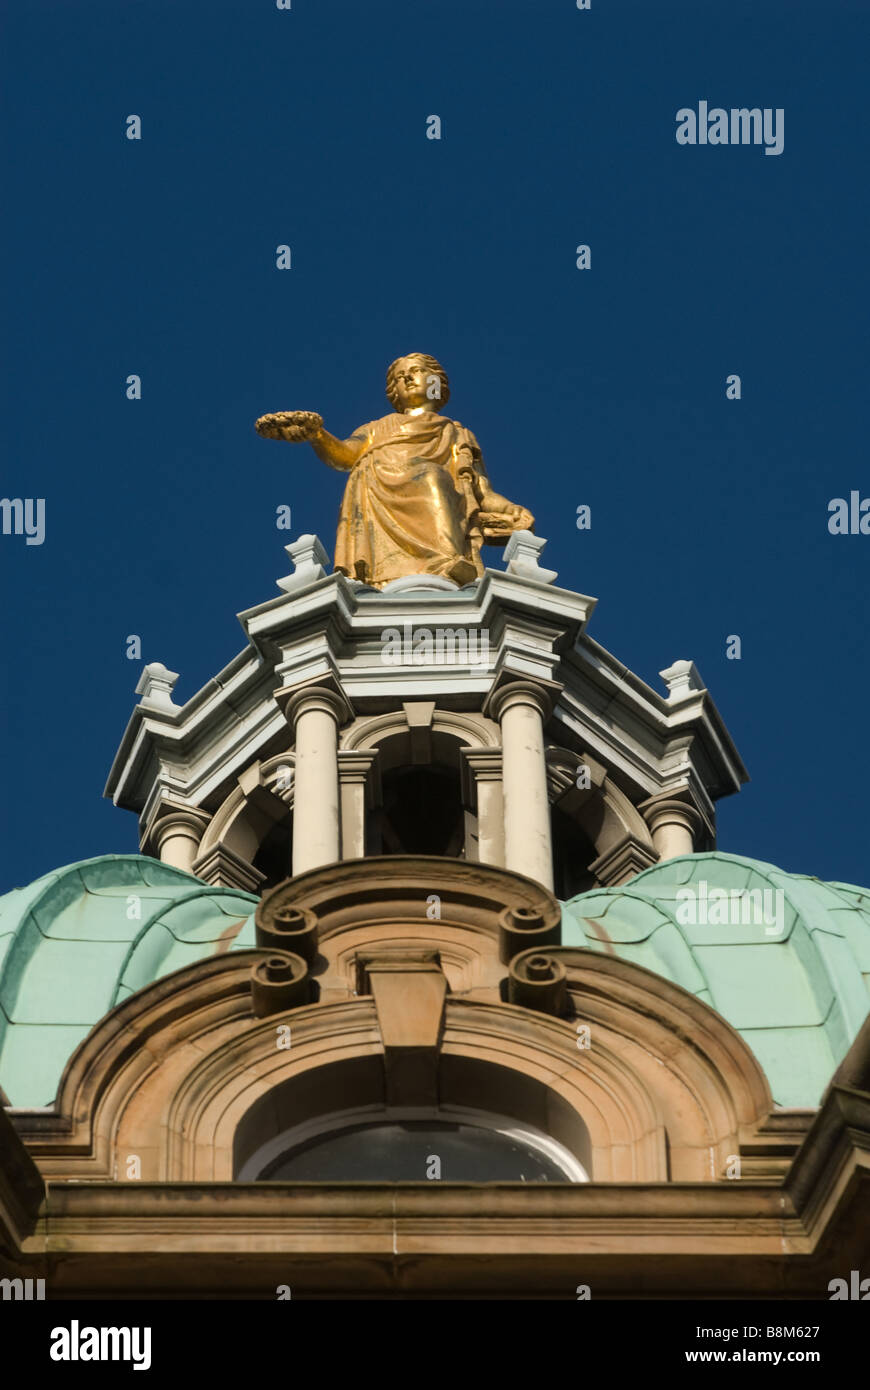 photograph of hbos bos hq golden girl statue on domed tower - Stock Image